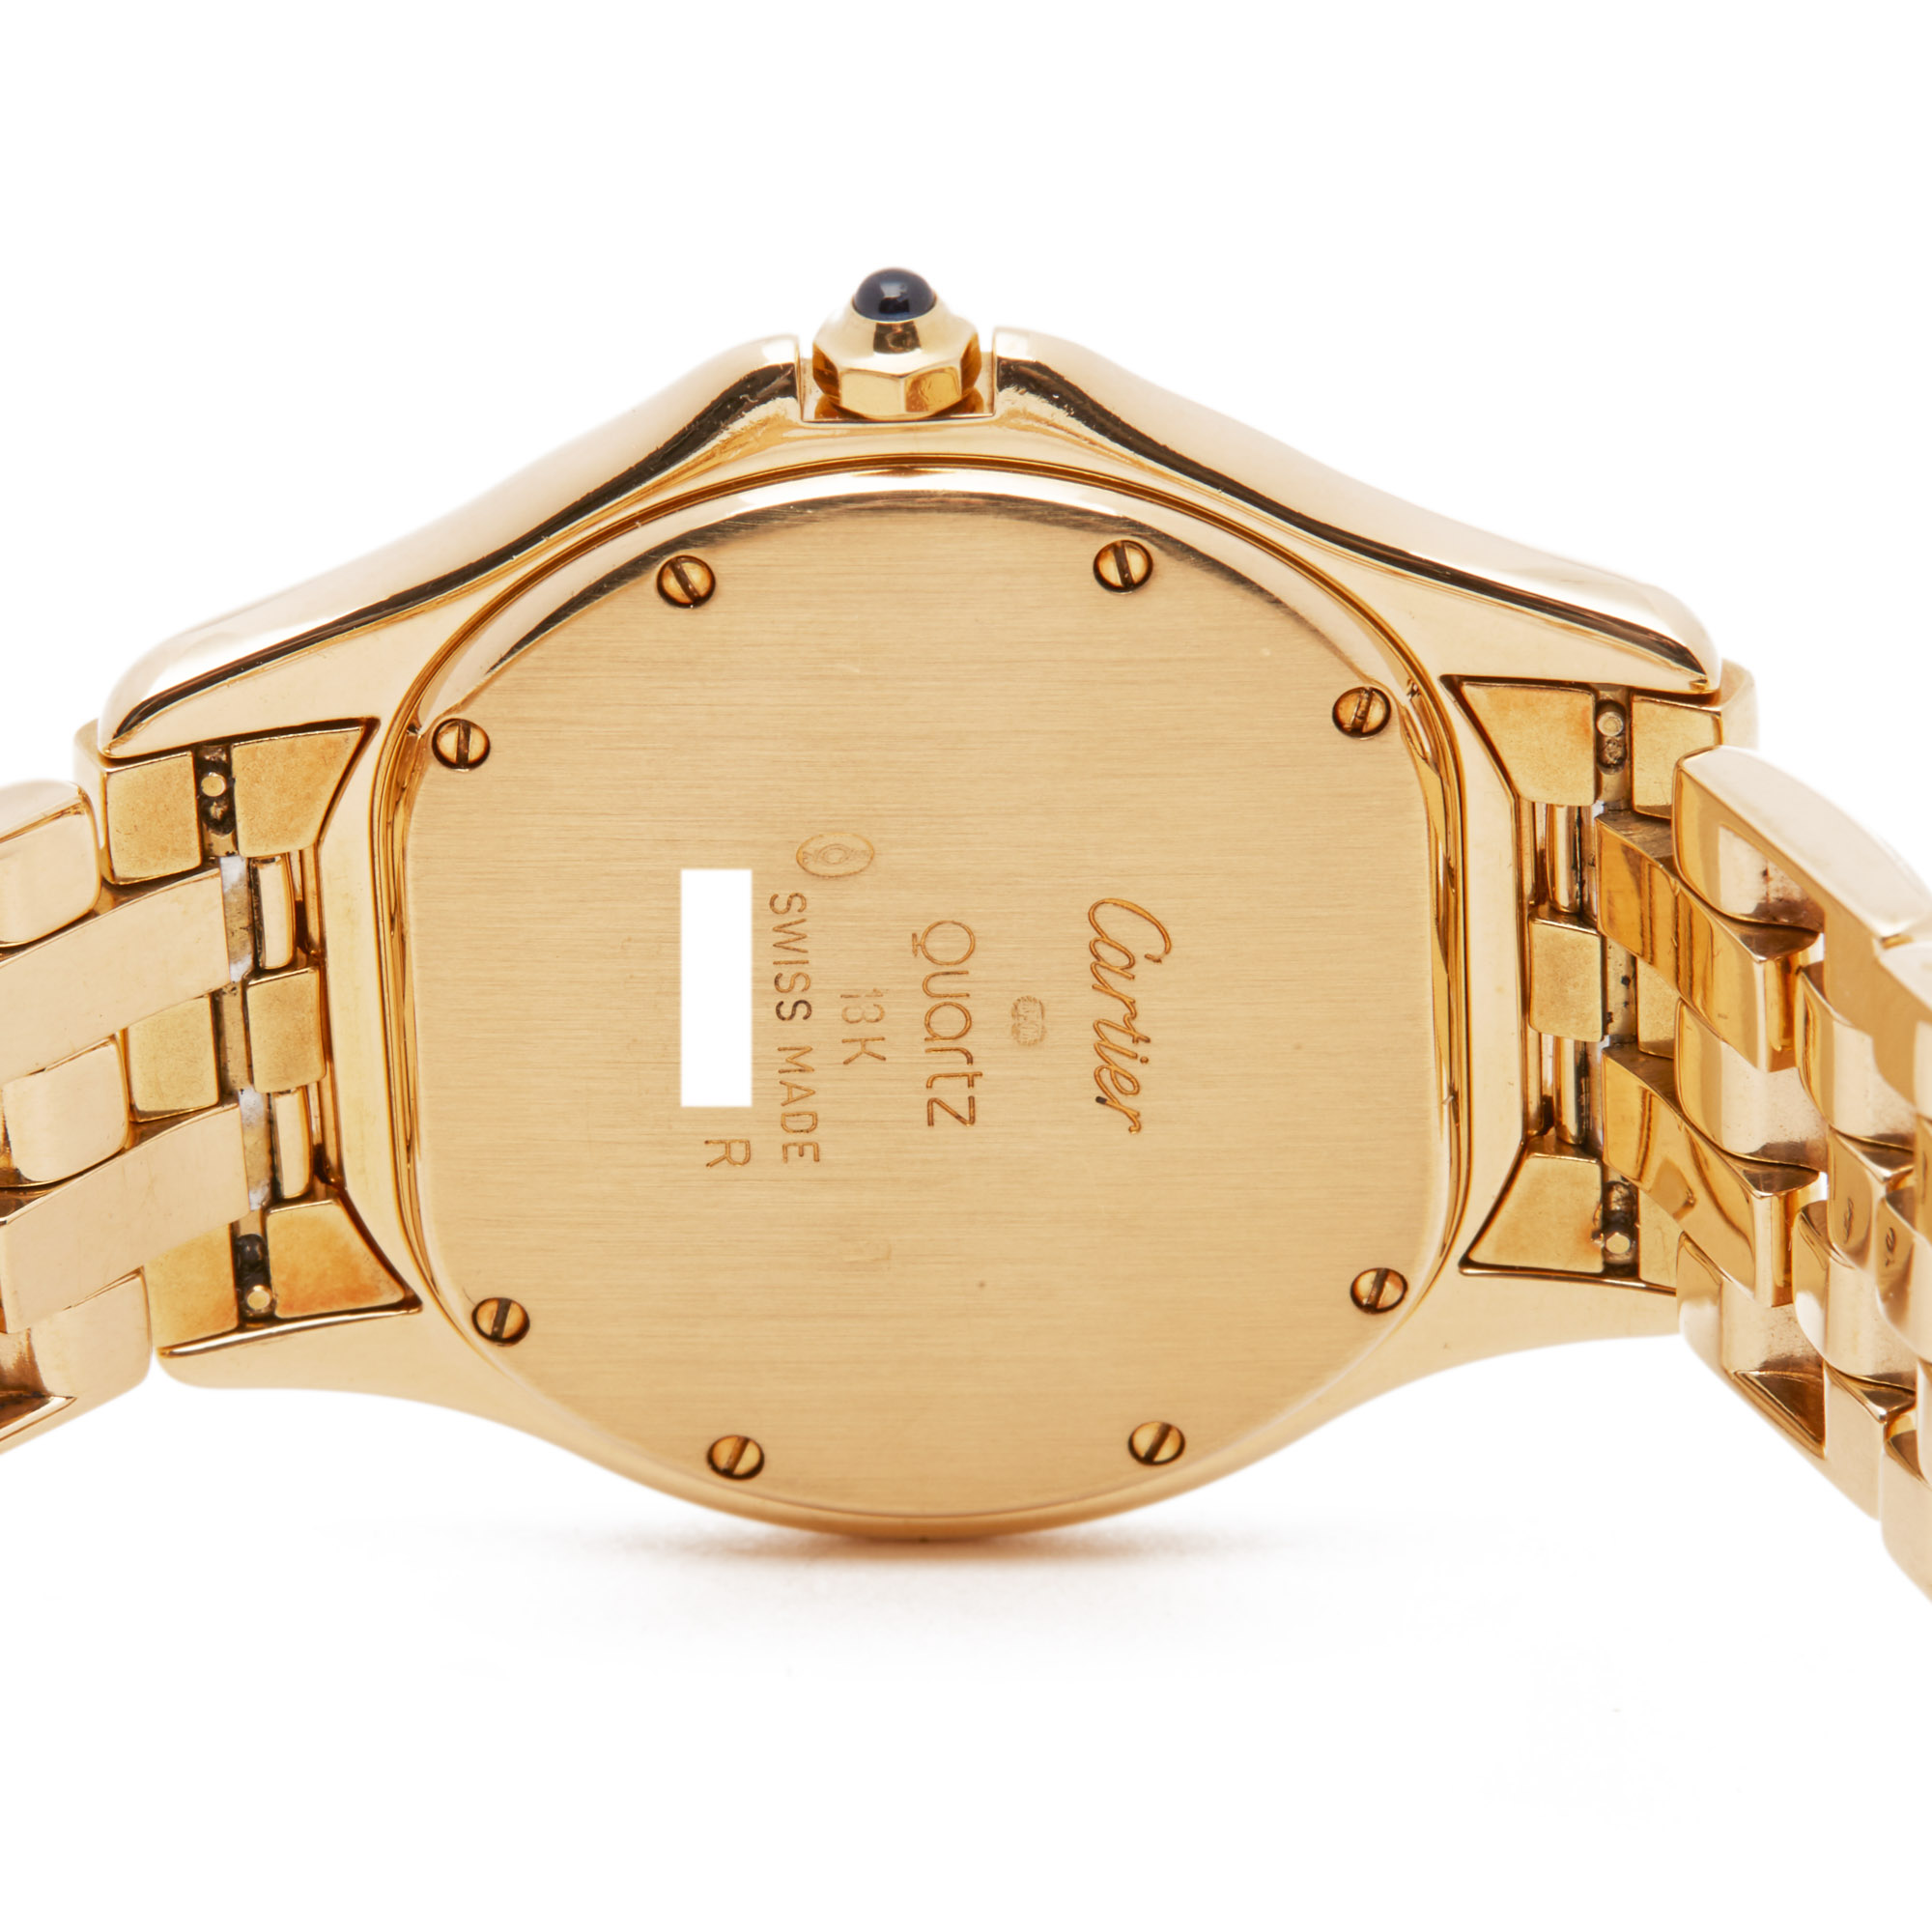 Cartier Panthère Cougar 116000R Unisex Yellow Gold Watch - Image 4 of 8